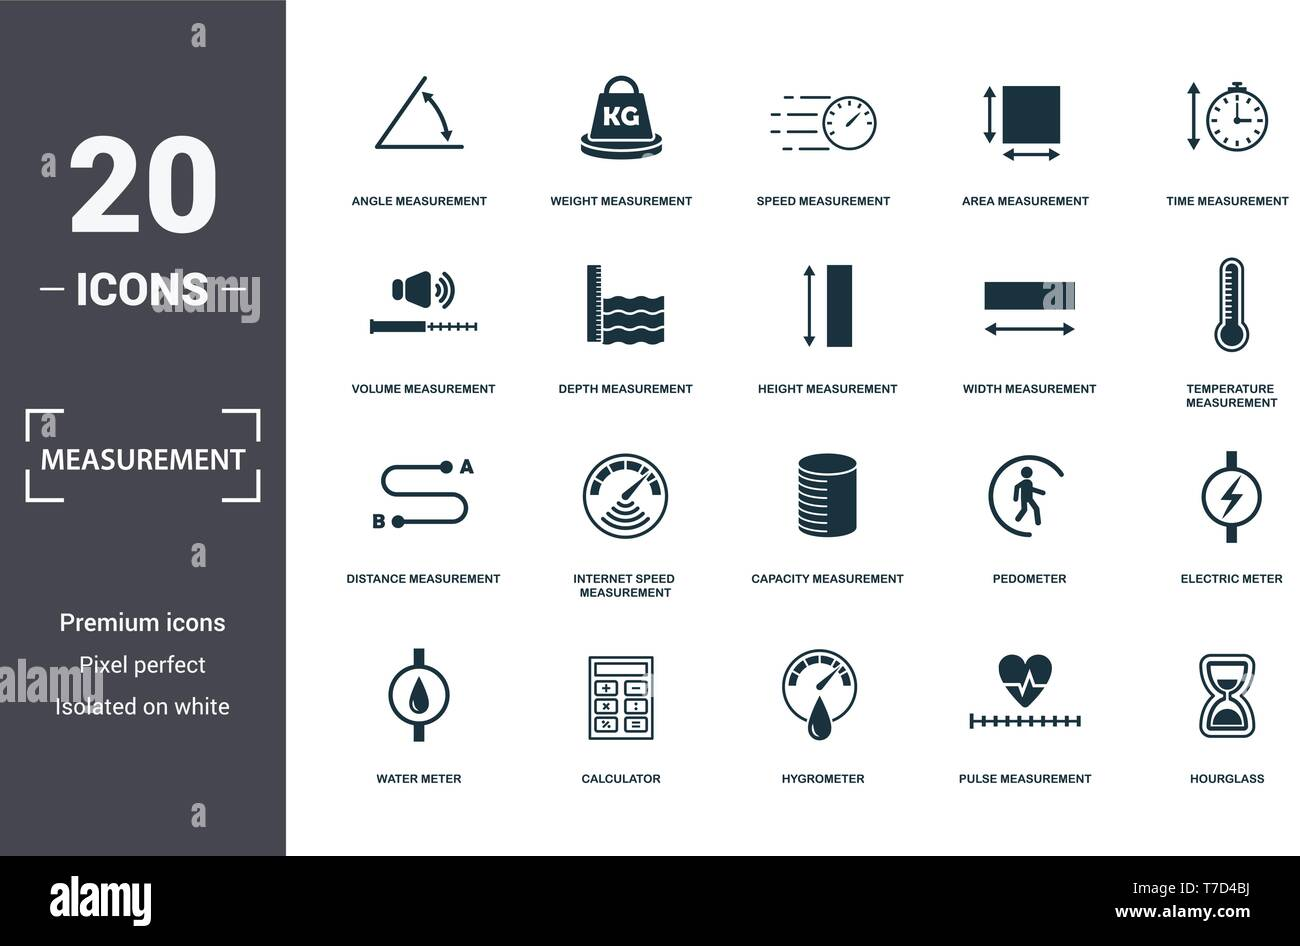 Measurement icons set collection. Includes simple elements such as Angle Measurement, Weight, Speed Measurement, Area Measurement, Time, Internet Spee - Stock Image